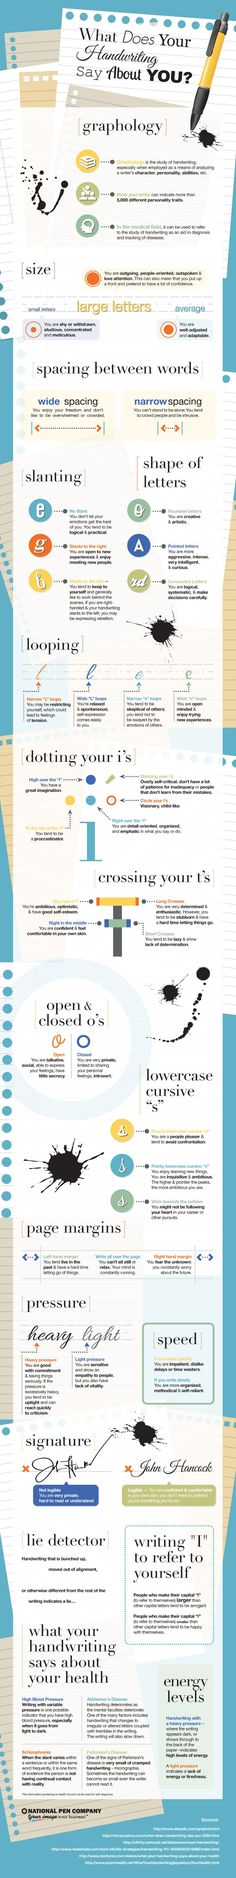 [Infographic] What Does Your Handwriting Say About You?